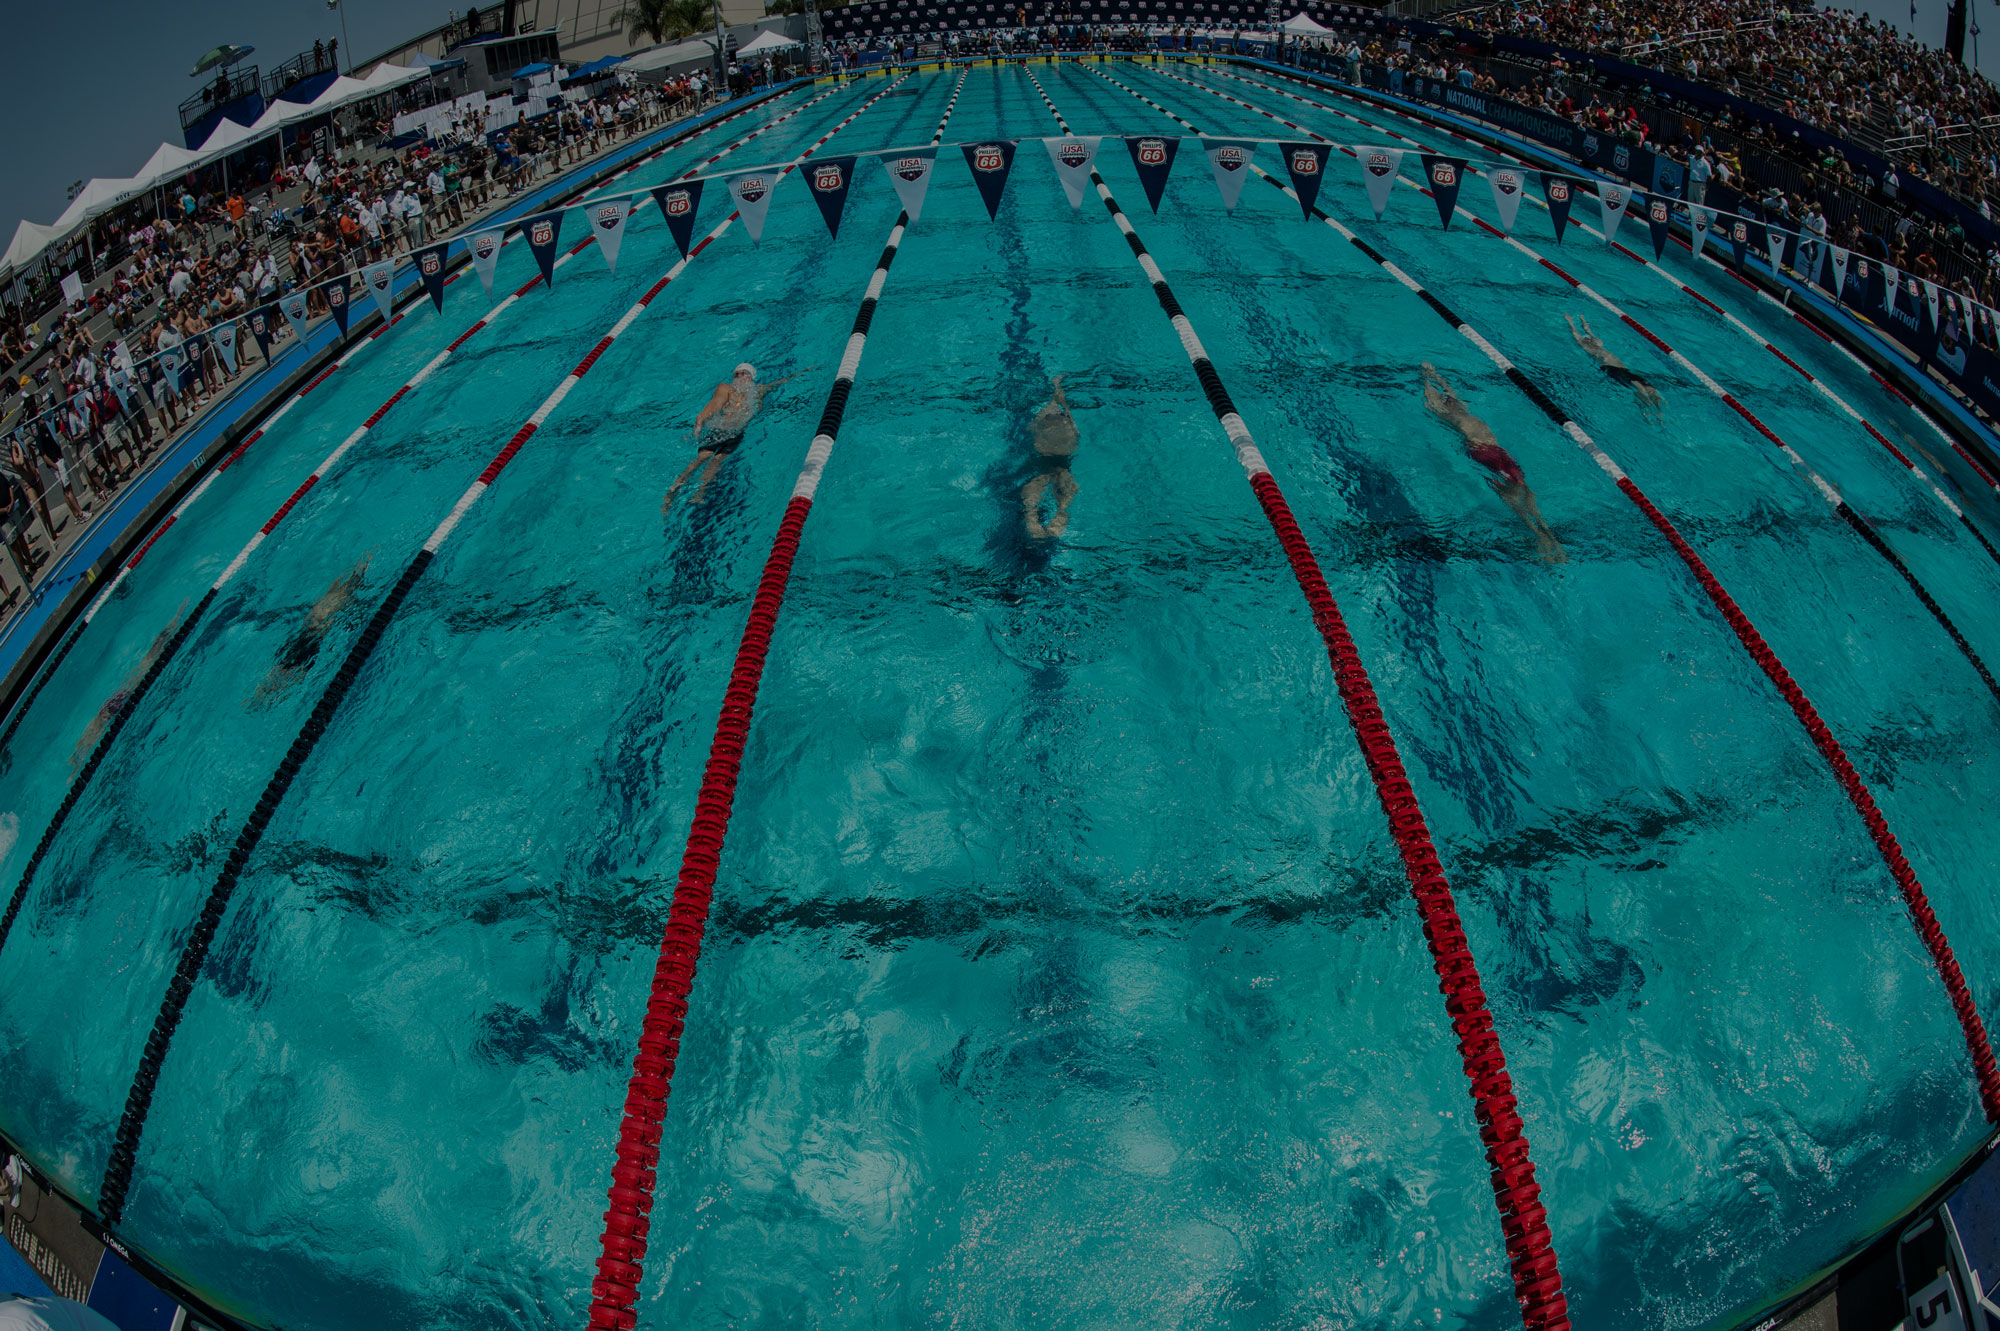 Competitor Swim ® | Leader in the Production of Racing Lanes